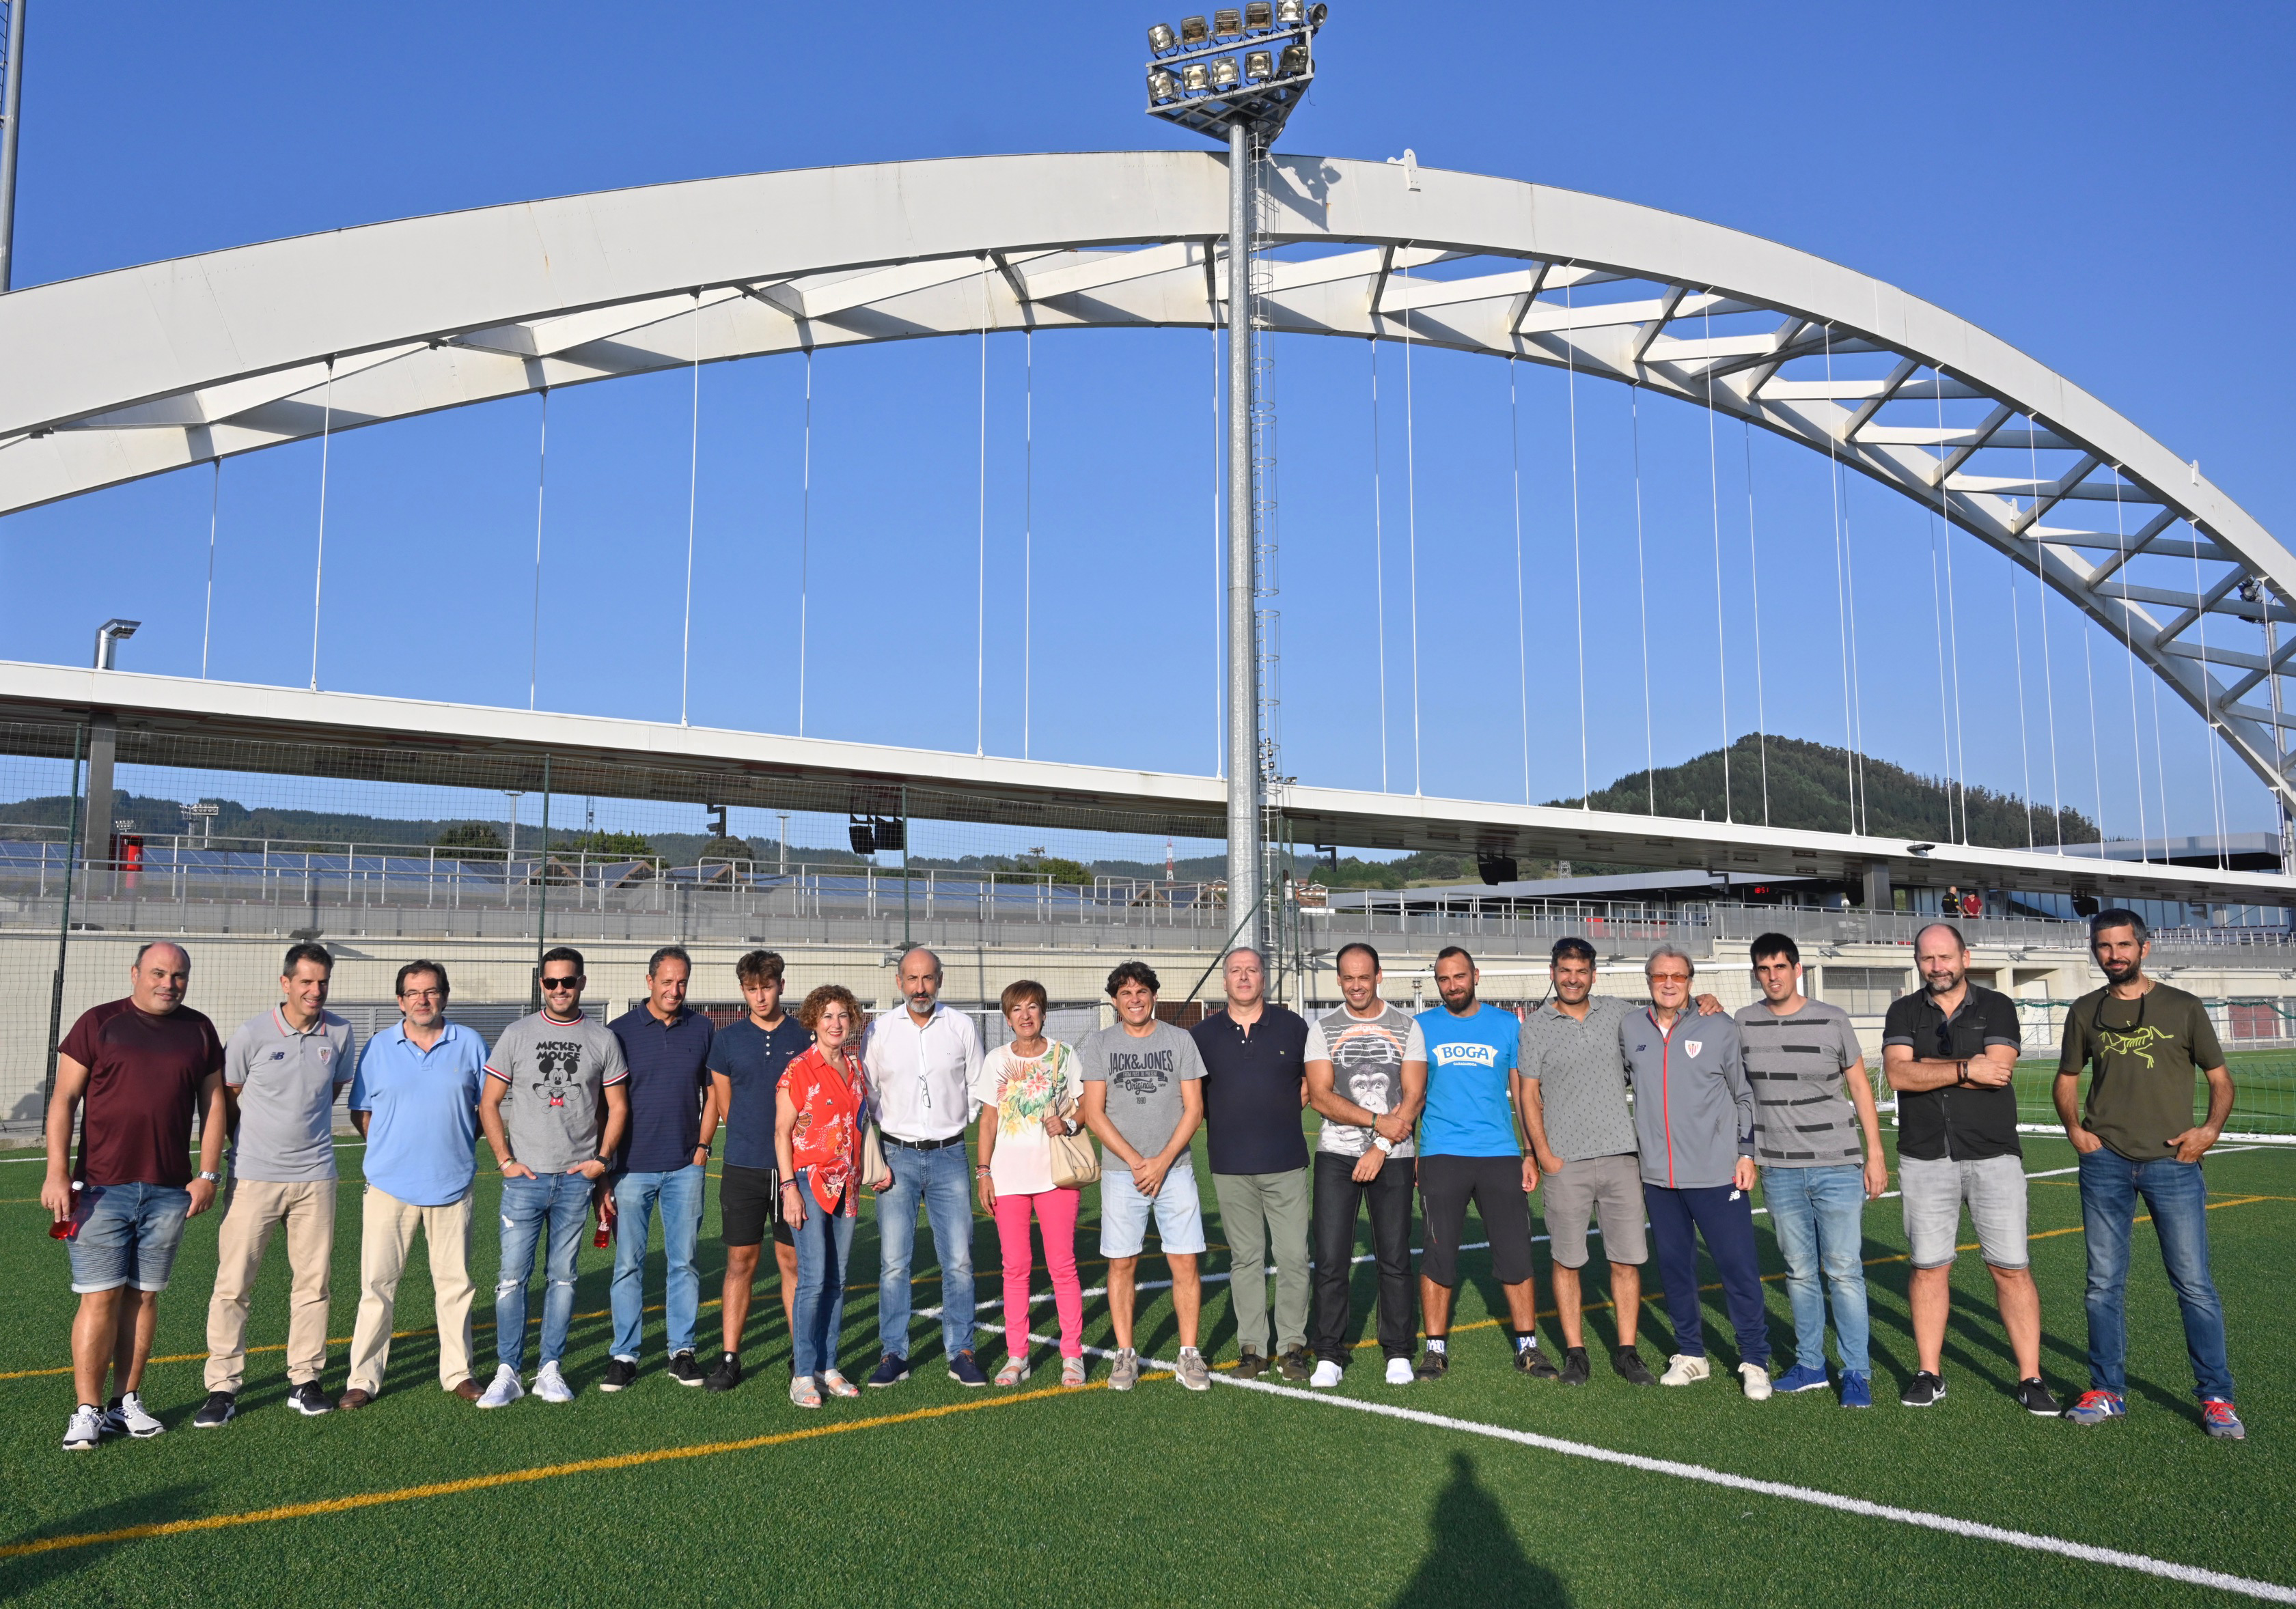 The first experience of the guided tours to Lezama